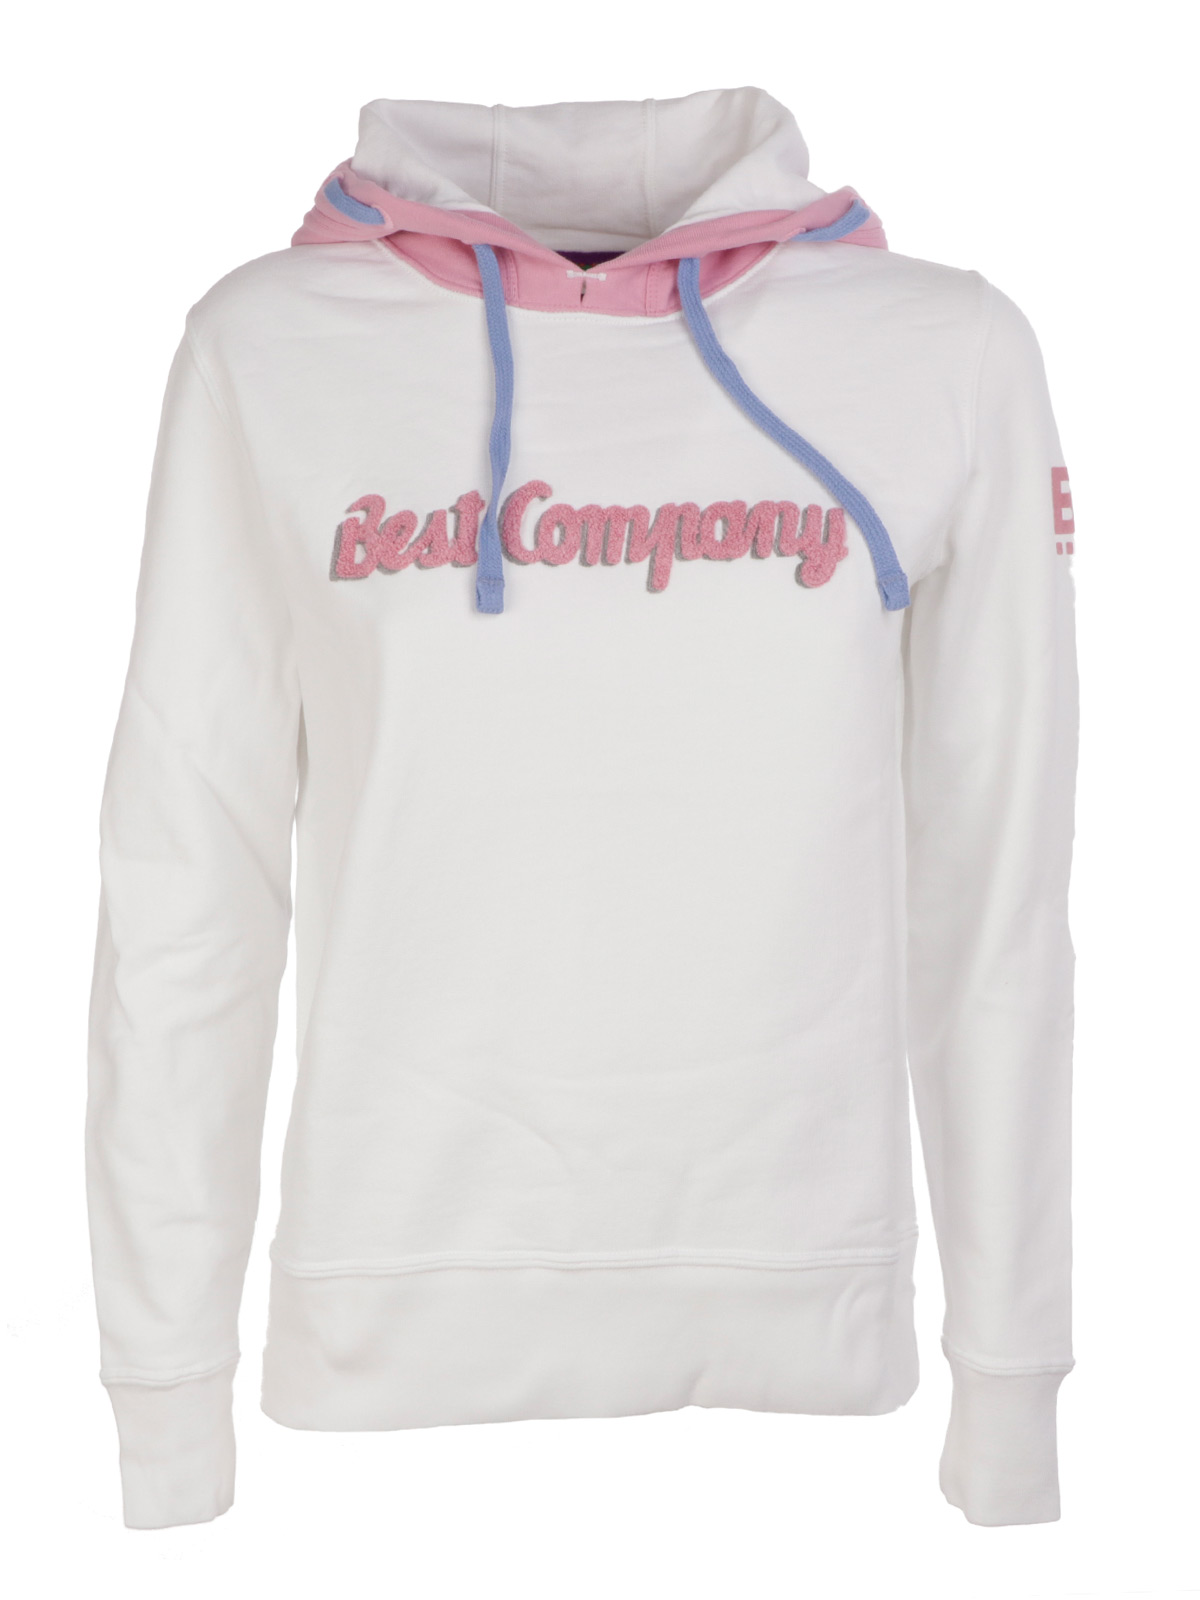 Picture of BEST COMPANY | Women's Hoodie Sweatshirt